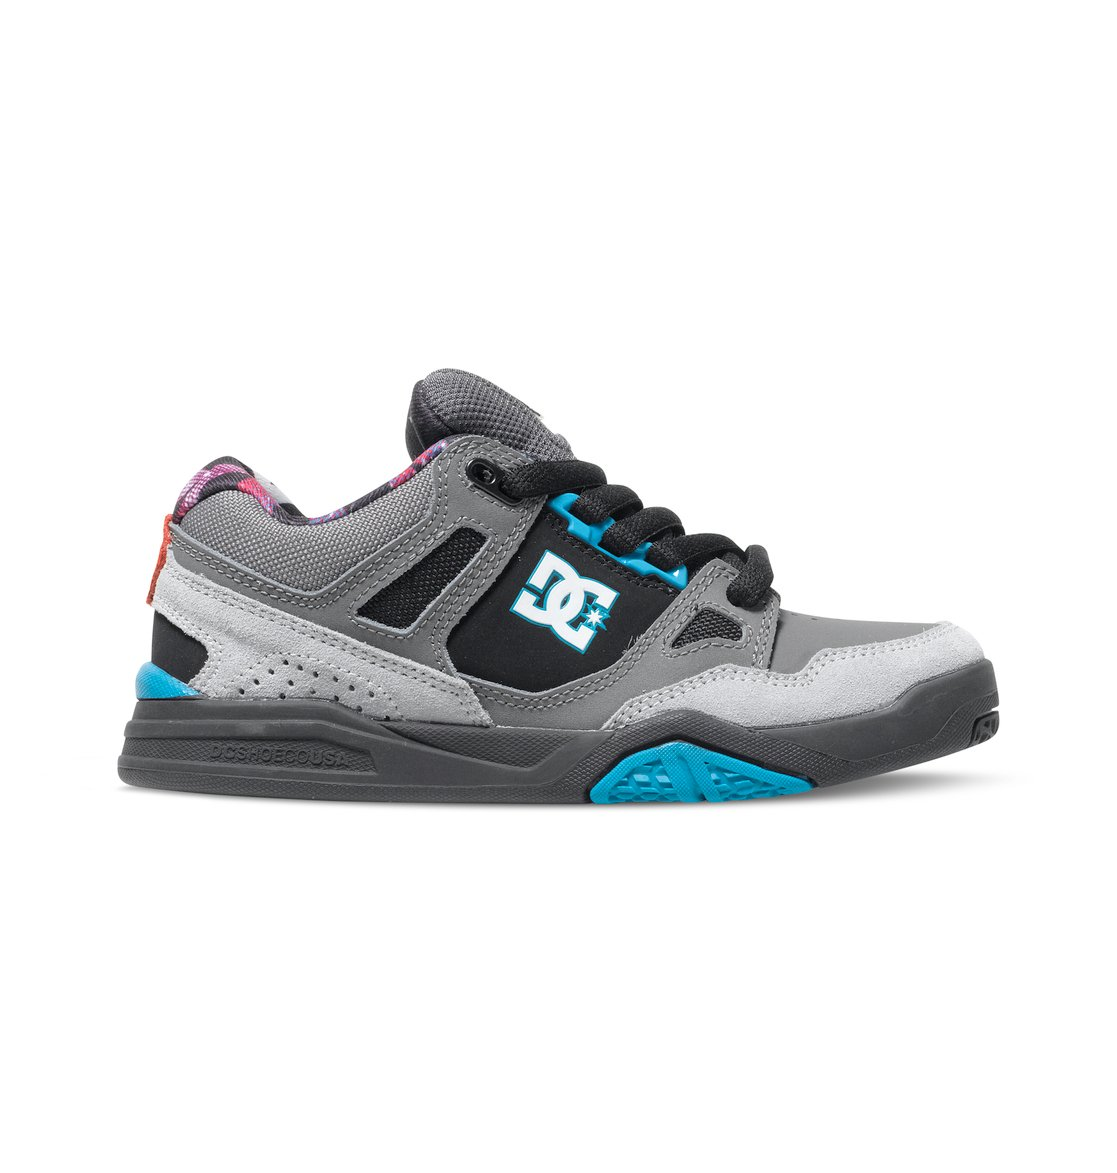 separation shoes 27e3b 14817 Stag 2 KB - Low Top Schuhe ADBS100148 | DC Shoes